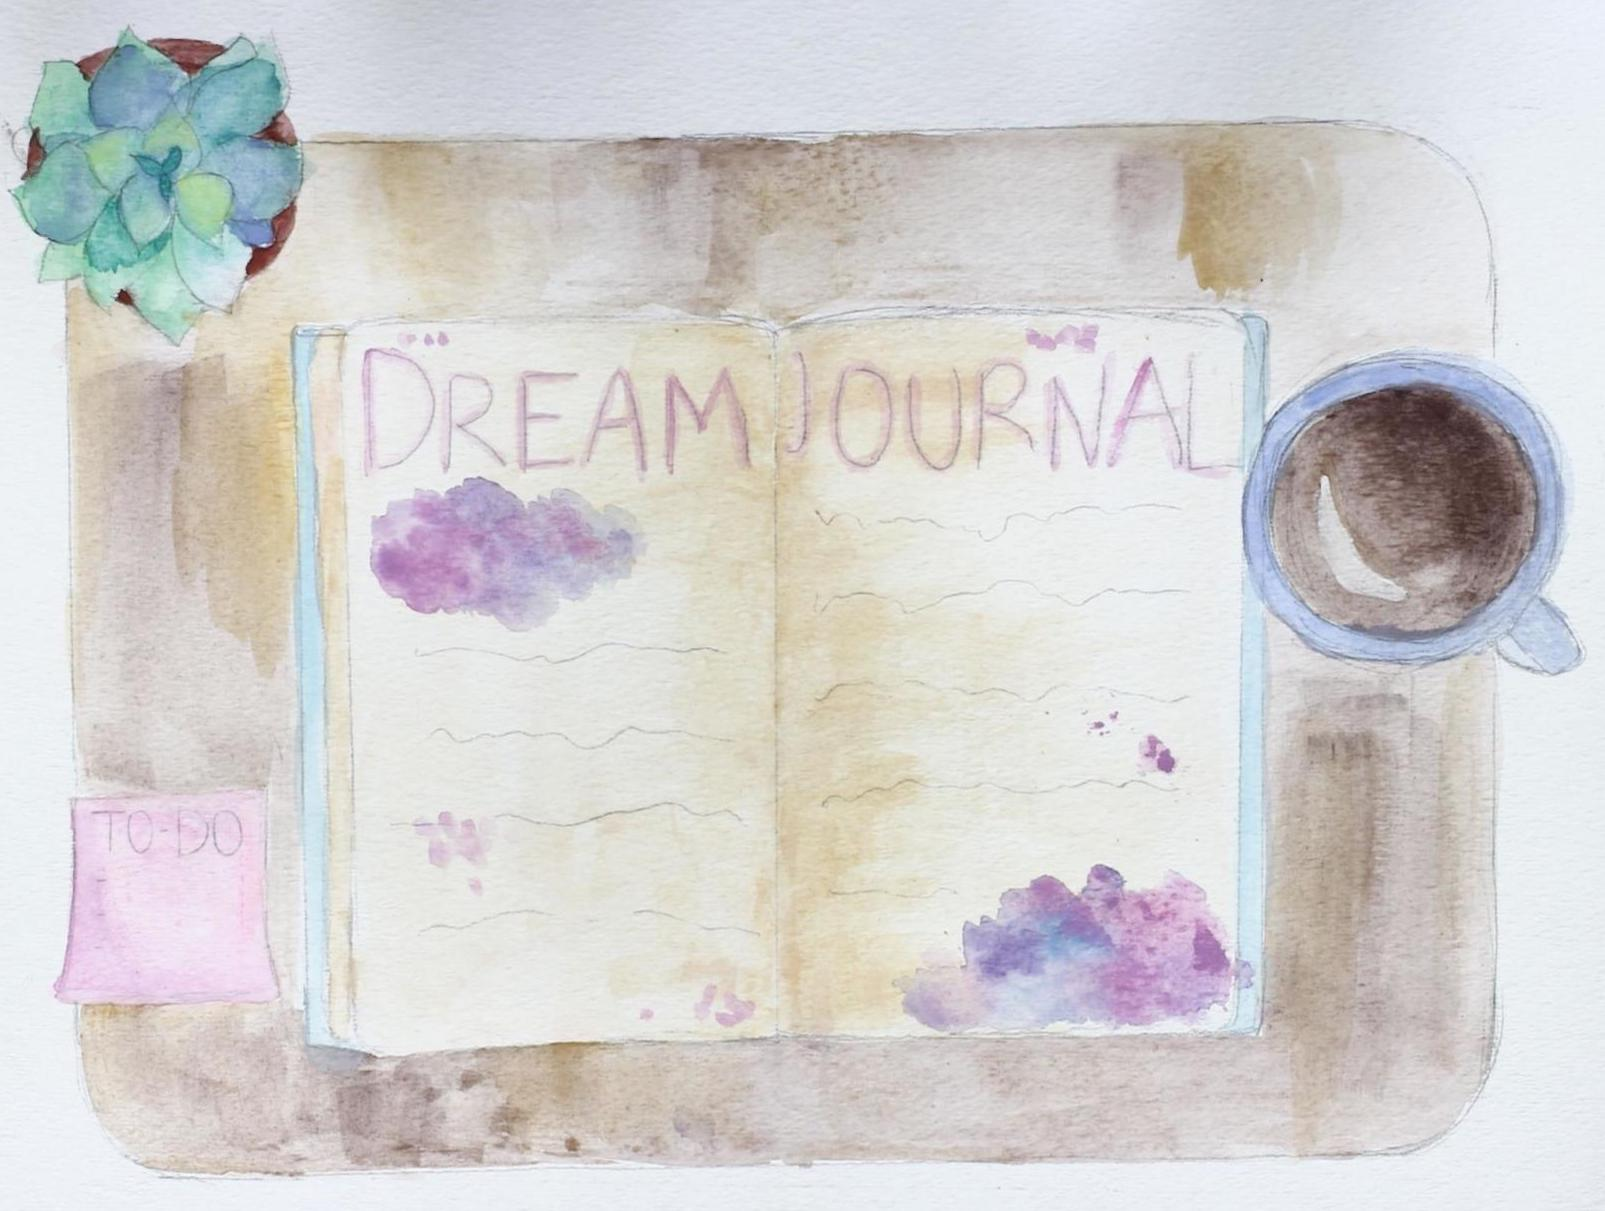 Artwork depicting a dream journal